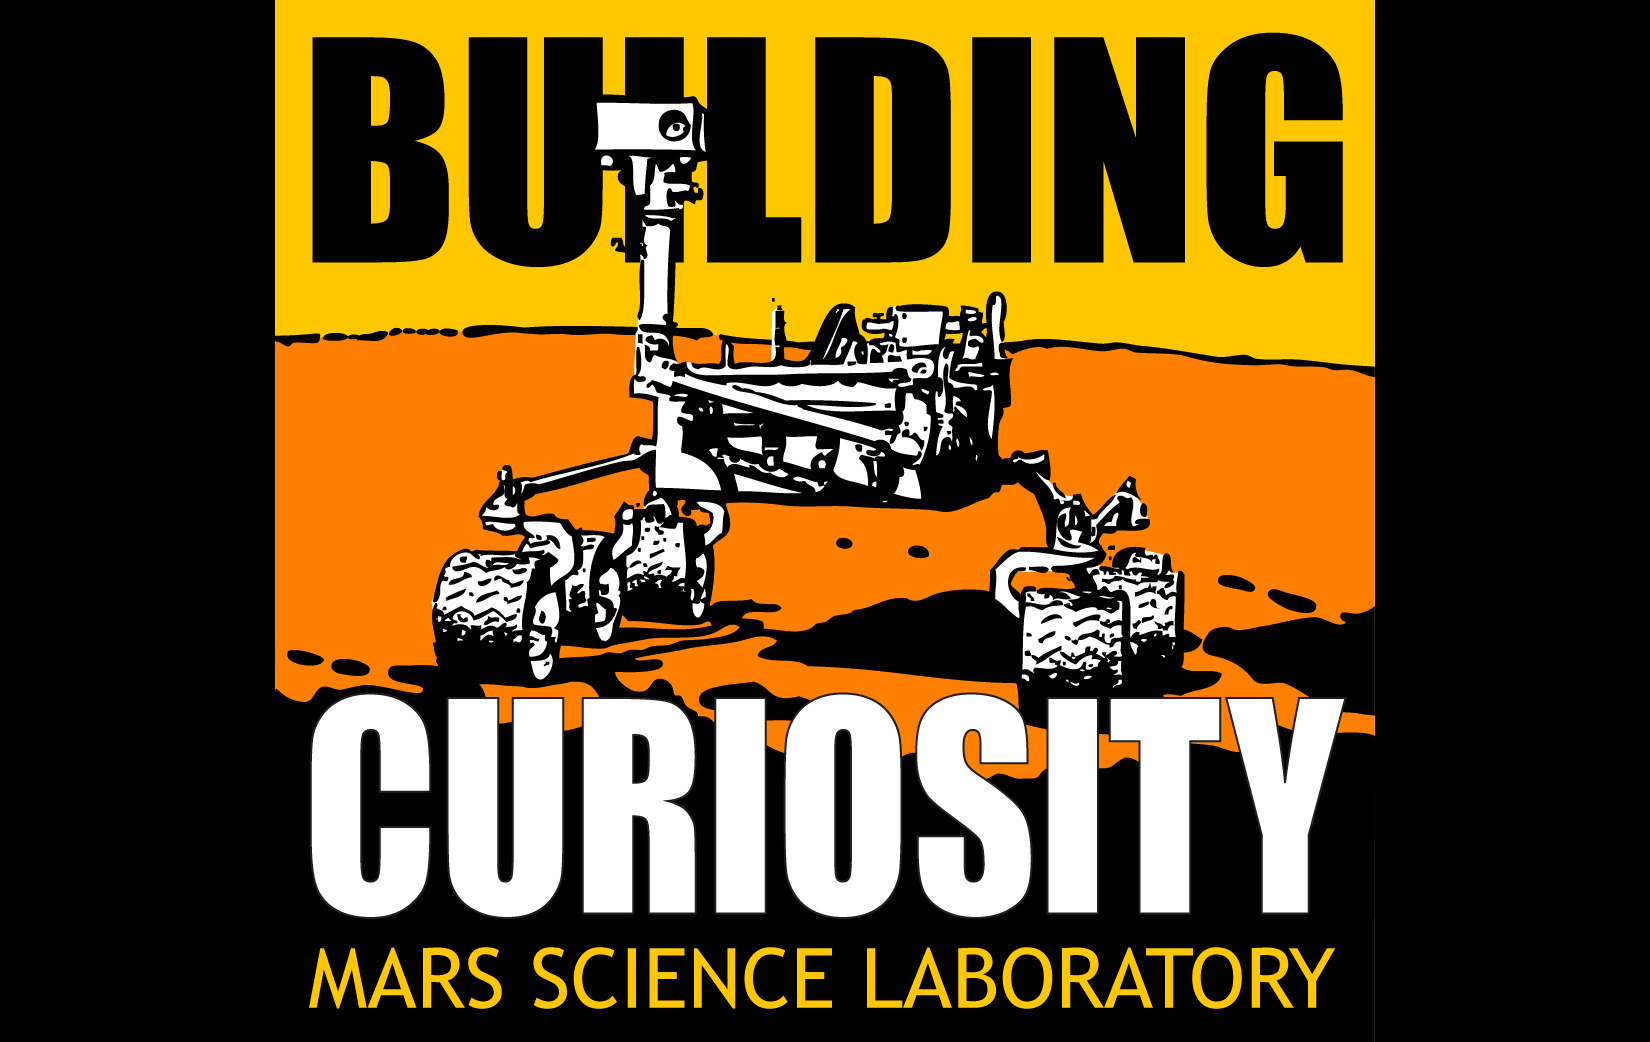 View video of building the Curiosity rover.